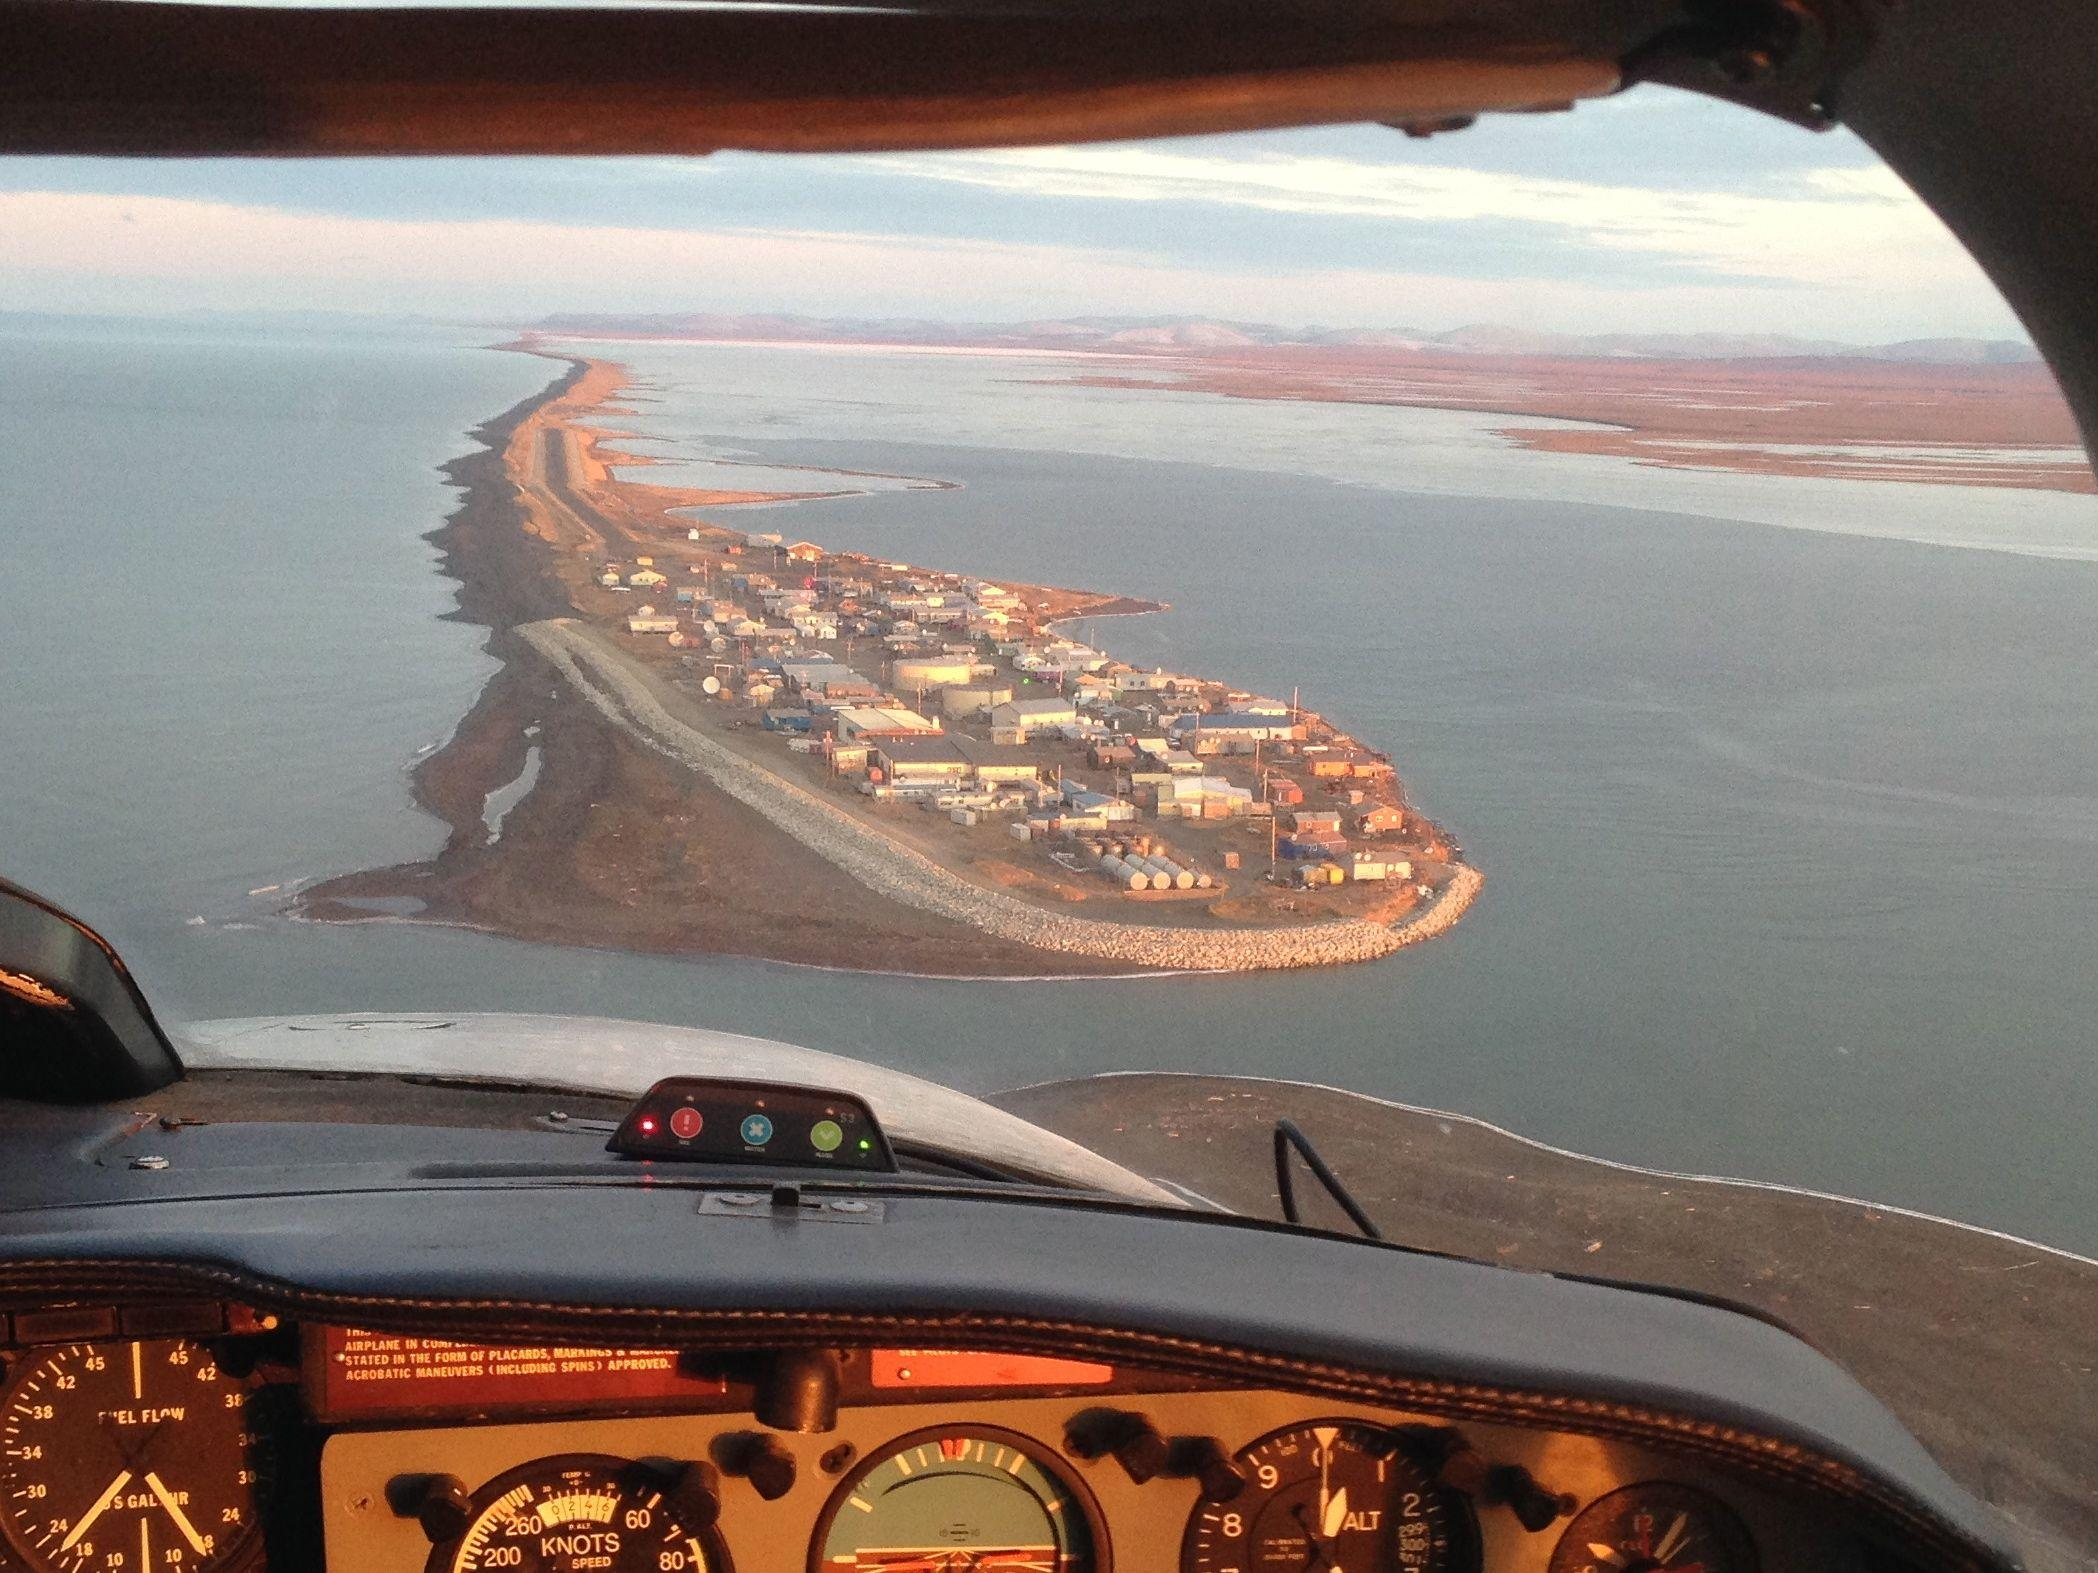 Water and sewer systems in communities across Alaska are threatened by flooding and erosion due to climate change. Shown here is the village of Kivalina located on a barrier island in Northwest Alaska that's facing inundation. Joaqlin Estus KNBA